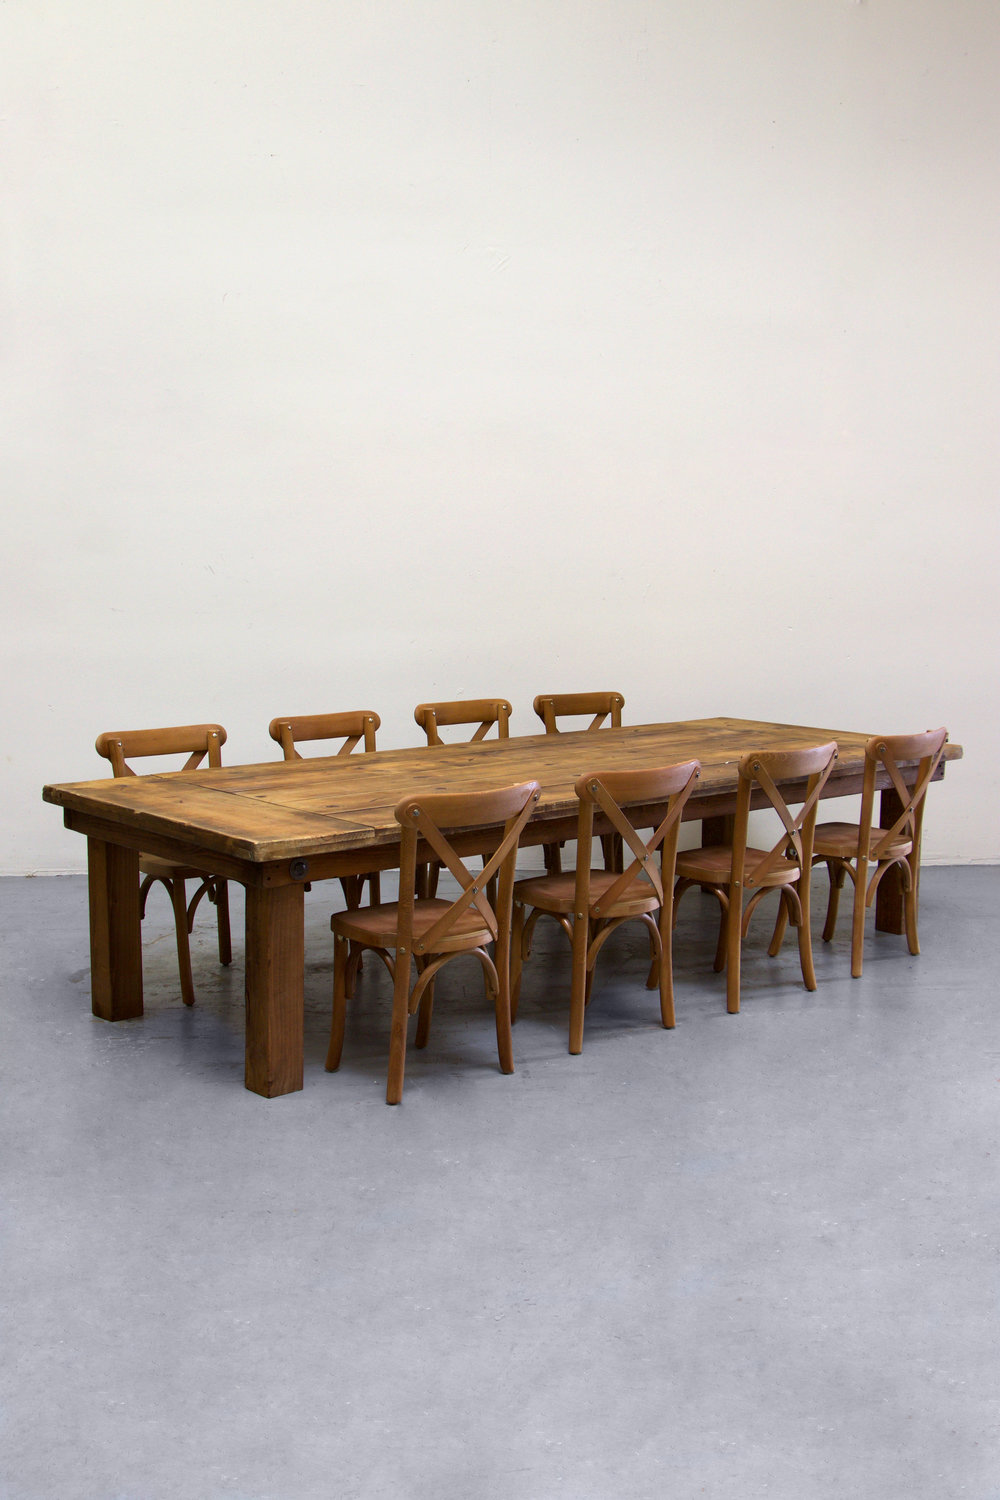 $130 1 Kids Honey Brown Farm Table w/ 8 Cross-Back Chairs